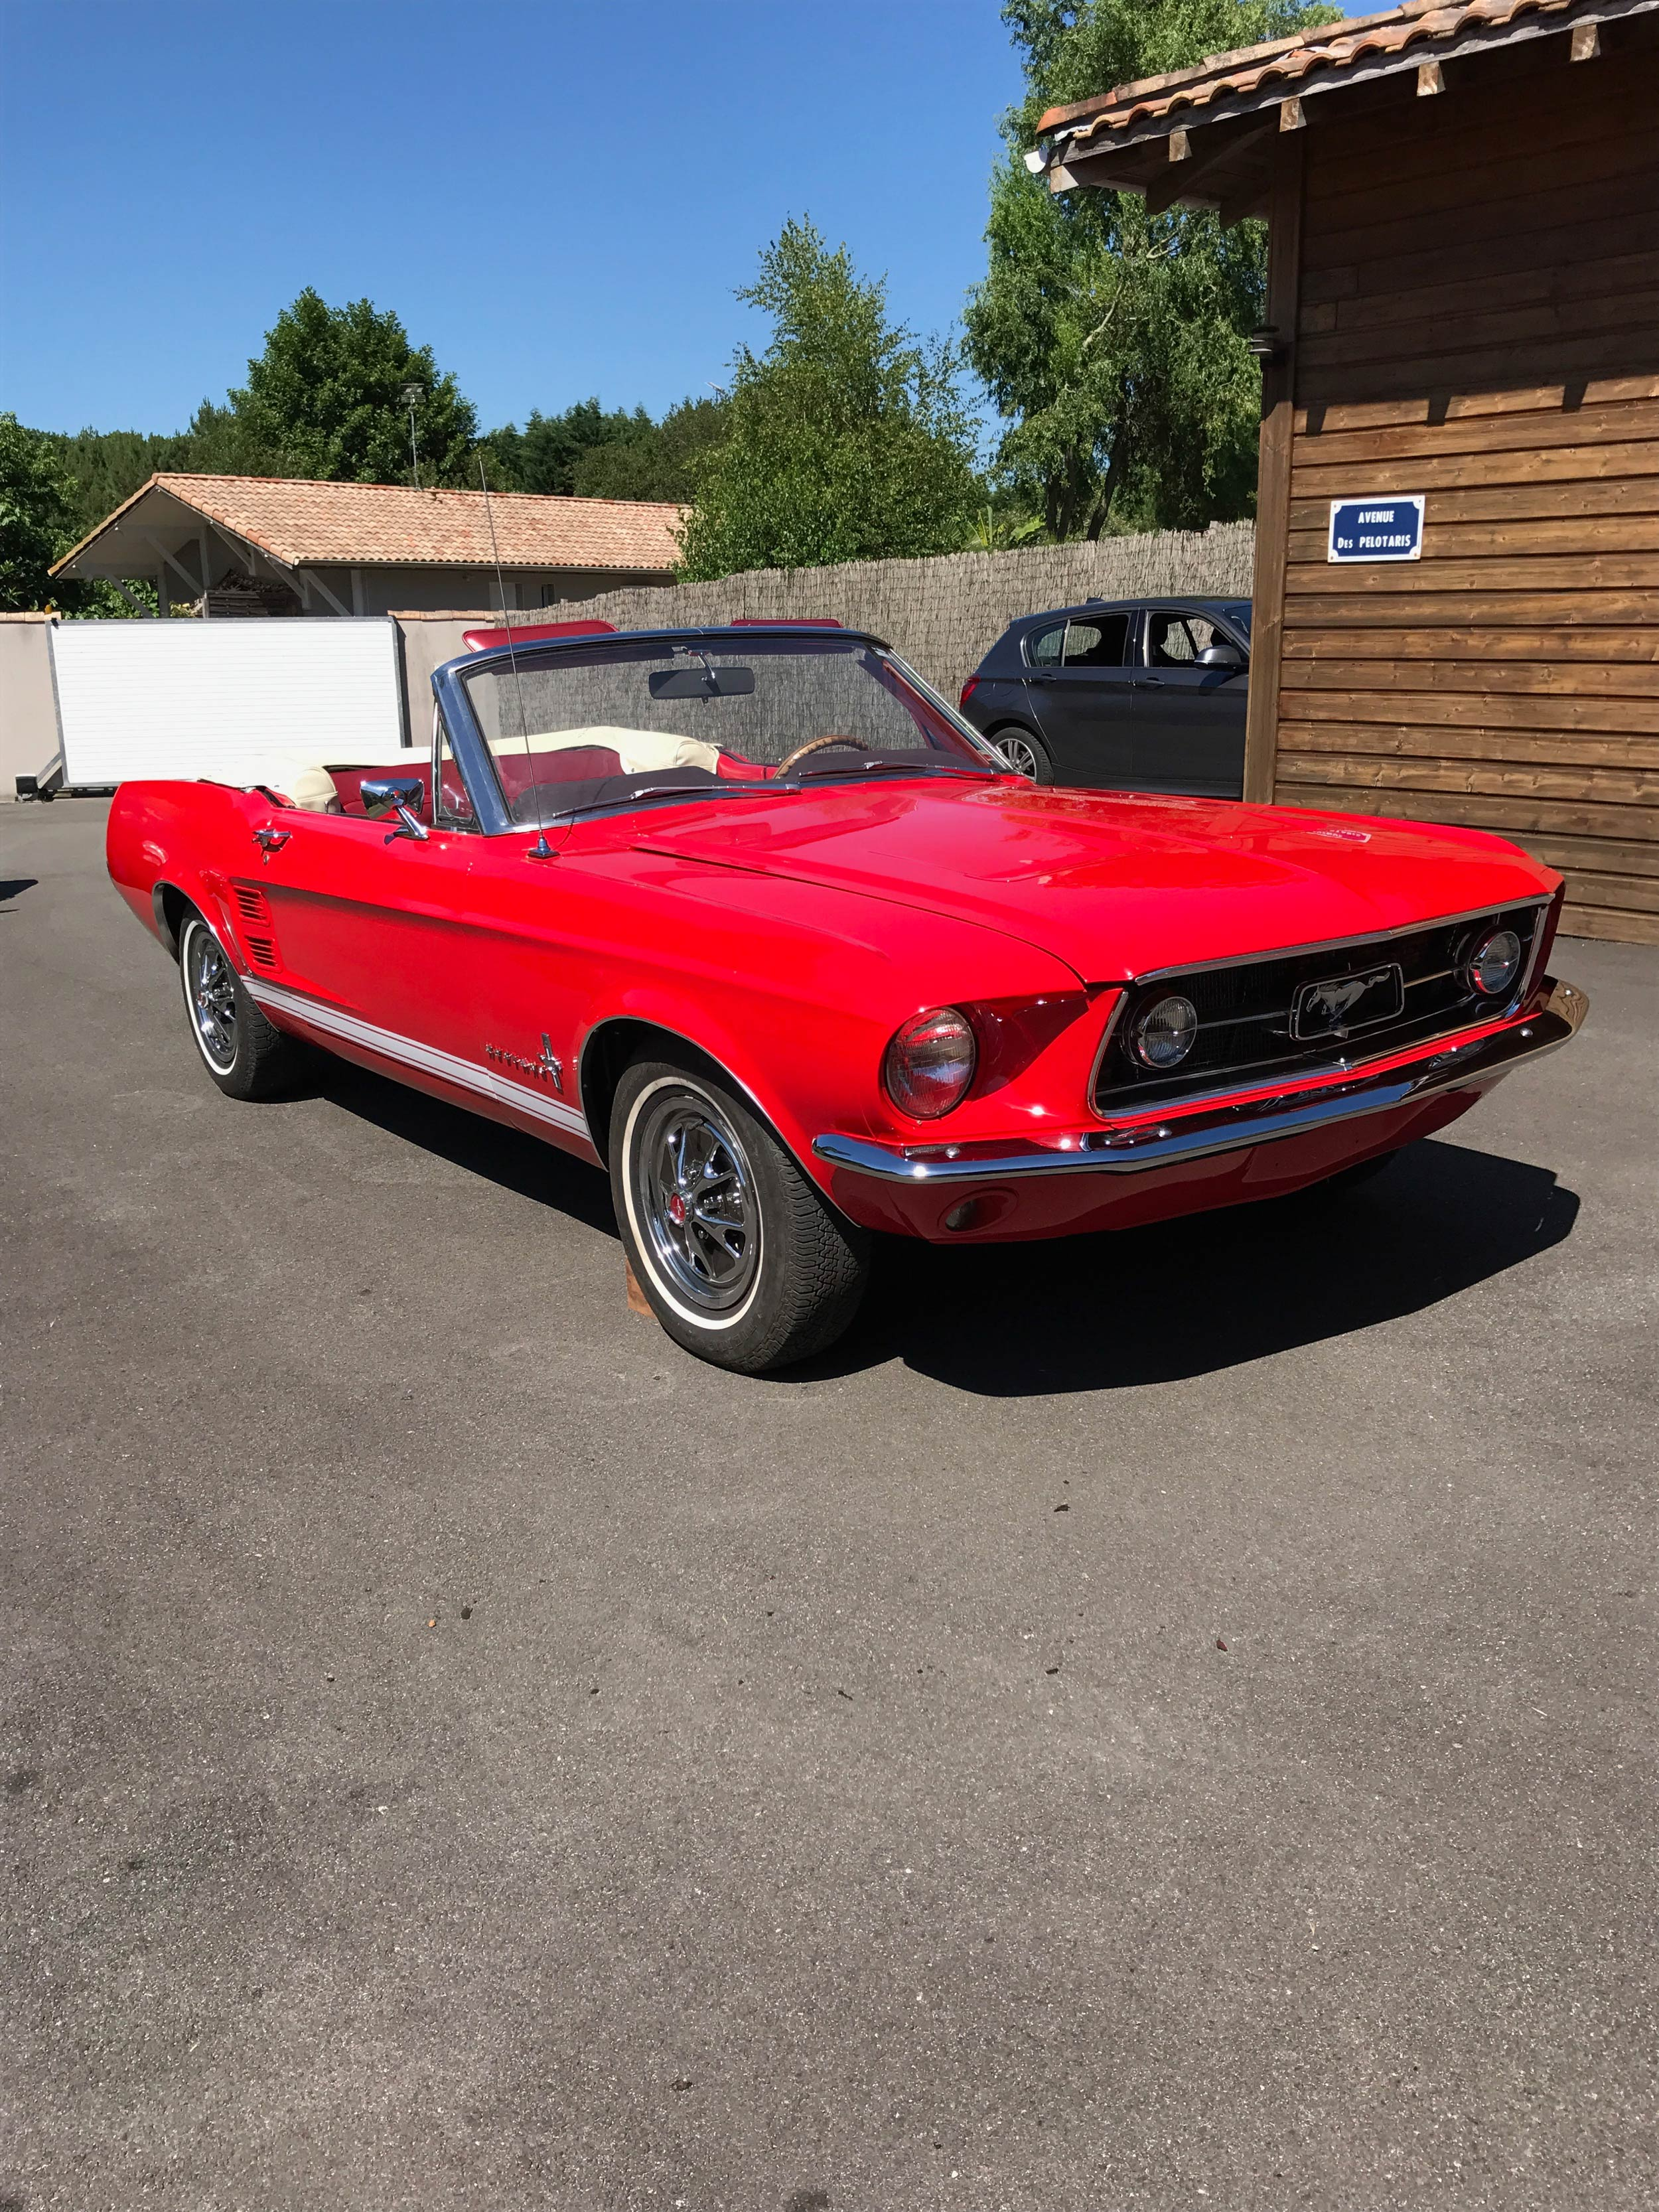 Vintage cars ford mustang cabriolet 1967